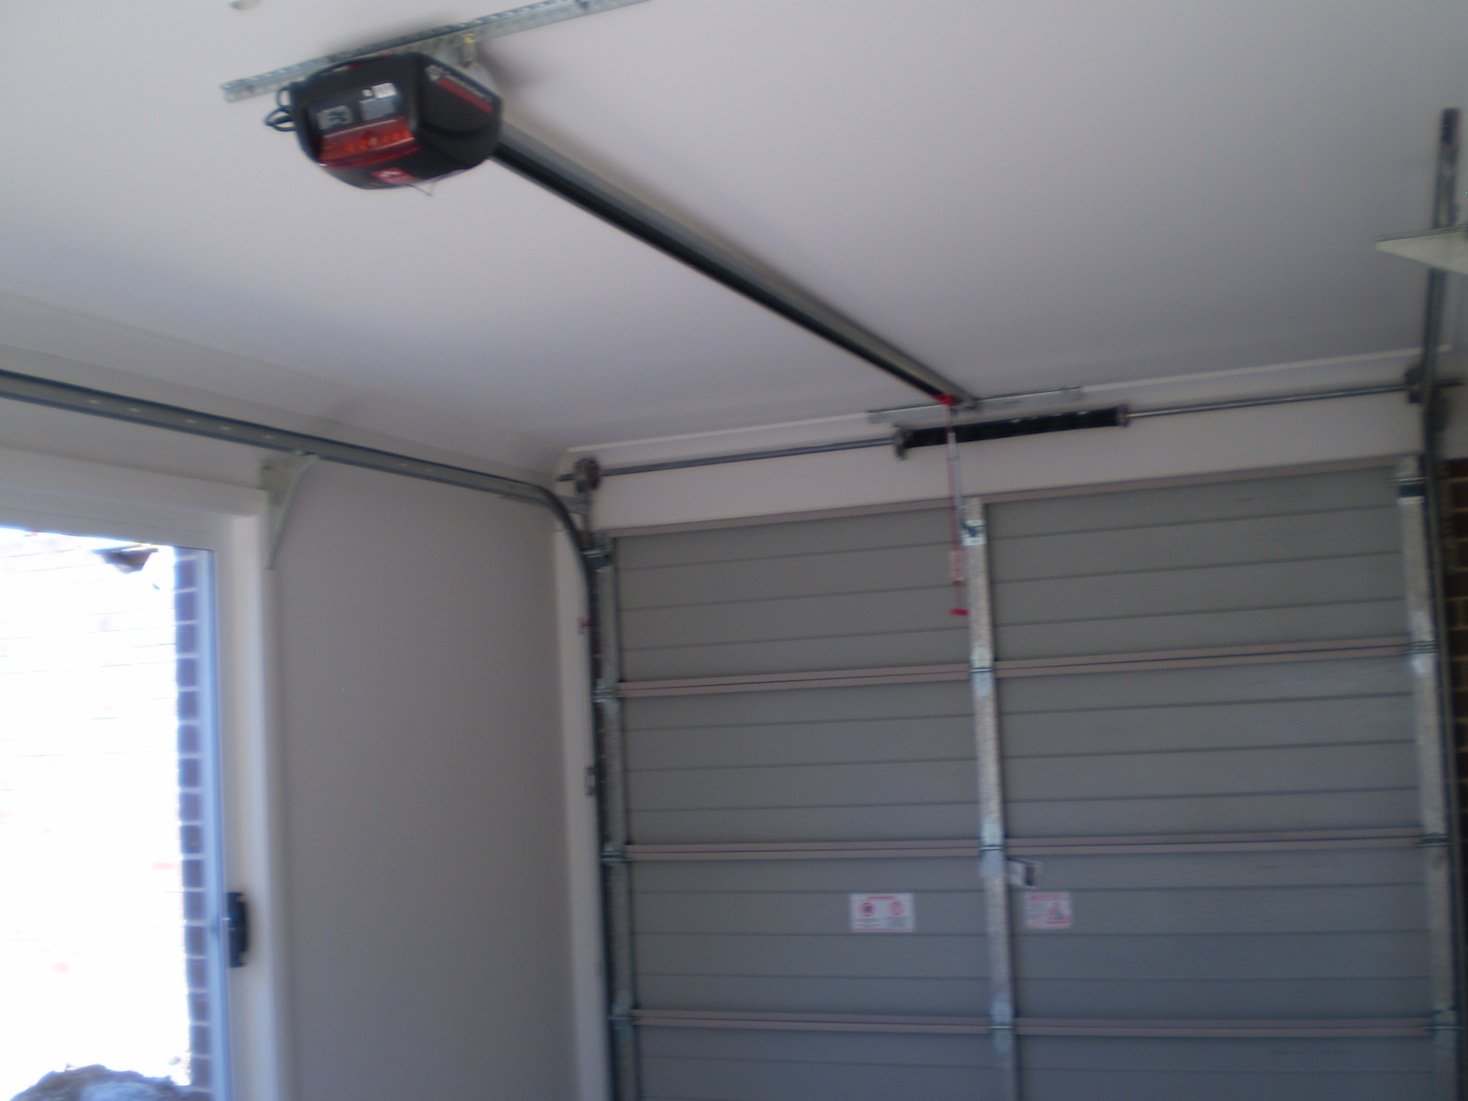 Le Meilleur Door Garage Motor Photo Of Motor For Swing Out Carriage Ce Mois Ci